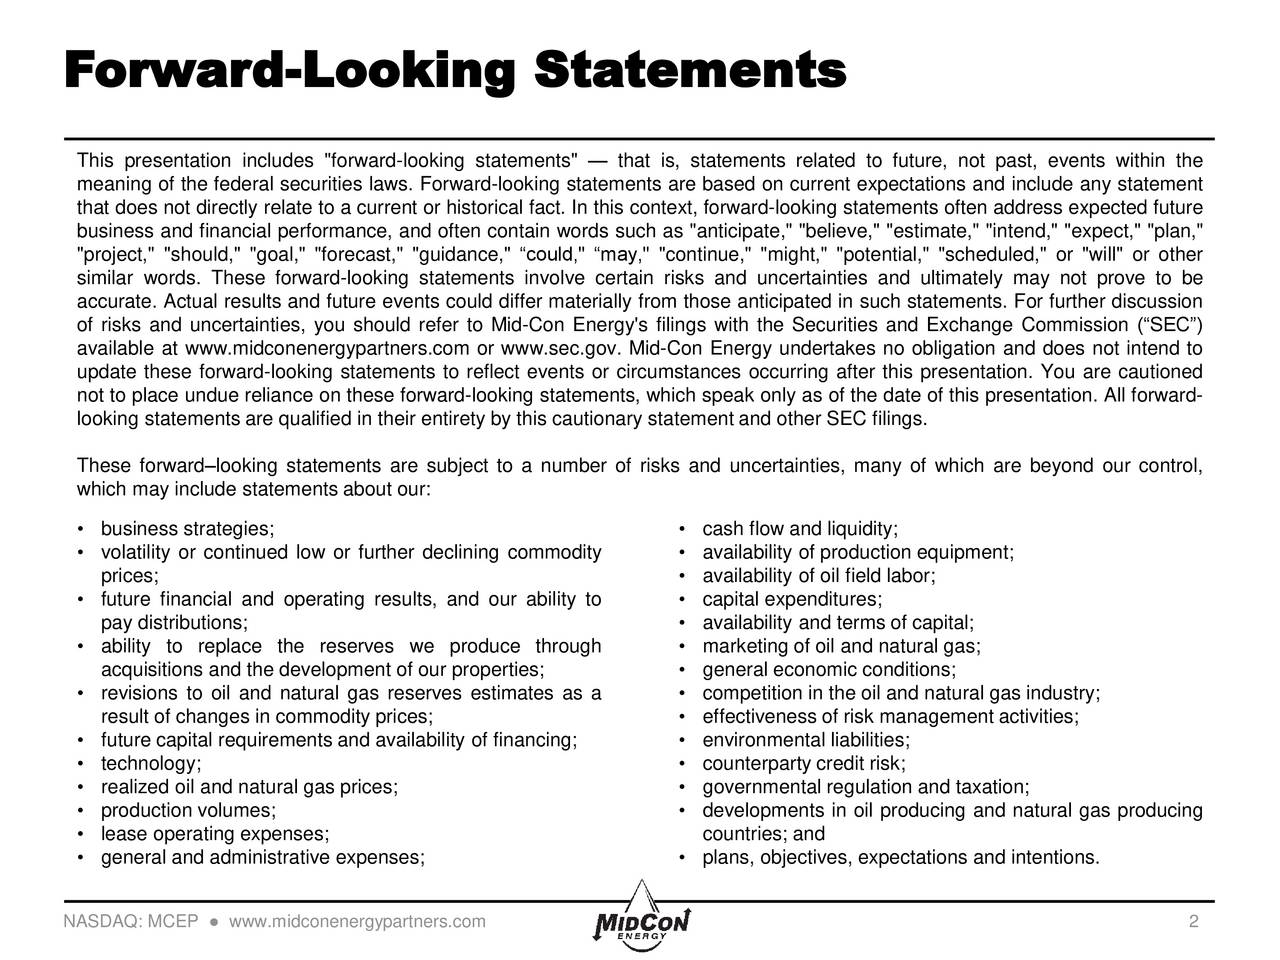 "This presentation includes ""forward-looking statements""  that is, statements related to future, not past, events within the meaning of the federal securities laws. Forward-looking statements are based on current expectations and include any statement that does not directly relate to a current or historical fact. In this context, forward-looking statements often address expected future business and financial performance, and often contain words such as ""anticipate,"" ""believe,"" ""estimate,"" ""intend,"" ""expect,"" ""plan,"" ""project,"" ""should,"" ""goal,"" ""forecast,"" ""guidance,"" could,"" may,"" ""continue,"" ""might,"" ""potential,"" ""scheduled,"" or ""will"" or other similar words. These forward-looking statements involve certain risks and uncertainties and ultimately may not prove to be accurate. Actual results and future events could differ materially from those anticipated in such statements. For further discussion of risks and uncertainties, you should refer to Mid-Con Energy's filings with the Securities and Exchange Commission (SEC) available at www.midconenergypartners.com or www.sec.gov. Mid-Con Energy undertakes no obligation and does not intend to update these forward-looking statements to reflect events or circumstances occurring after this presentation. You are cautioned not to place undue reliance on these forward-looking statements, which speak only as of the date of this presentation. All forward- looking statements are qualified in their entirety by this cautionary statement and other SEC filings. These forwardlooking statements are subject to a number of risks and uncertainties, many of which are beyond our control, which may include statements about our: business strategies;  cash flow and liquidity; volatility or continued low or further declining commodity  availability of production equipment; prices;  availability of oil field labor; future financial and operating results, and our ability to  capital expenditures; pay distributions;  availability and terms of capital; ability to replace the reserves we produce through  marketing of oil and natural gas; acquisitions and the development of our properties;  general economic conditions; revisions to oil and natural gas reserves estimates as a  competition in the oil and natural gas industry; result of changes in commodity prices;  effectiveness of risk management activities; future capital requirements and availability of financing;  environmental liabilities; technology;  counterparty credit risk; realized oil and natural gas prices;  governmental regulation and taxation; production volumes;  developments in oil producing and natural gas producing lease operating expenses; countries; and general and administrative expenses;  plans, objectives, expectations and intentions. NASDAQ: MCEP  www.midconenergypartners.com 2"